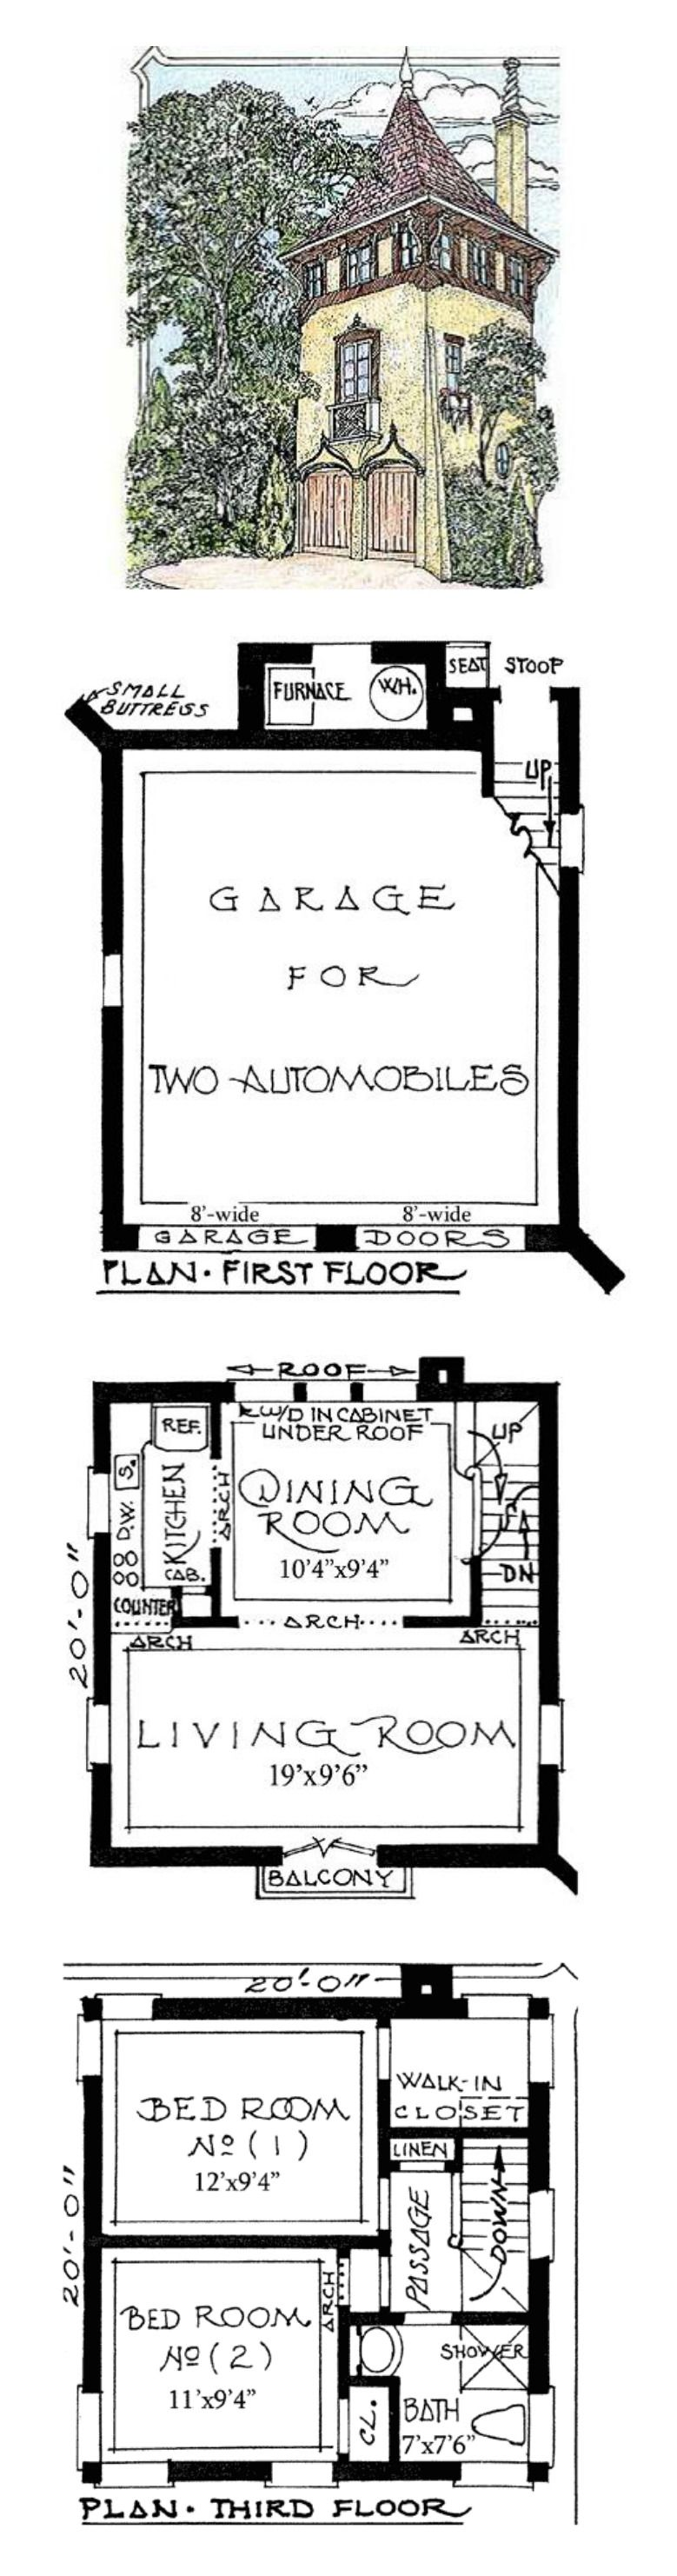 Architectural Designs ~ Romantic Carriage House Plans ~ It Also Could Have  Look Out Tower Design Applied To The Exterior.